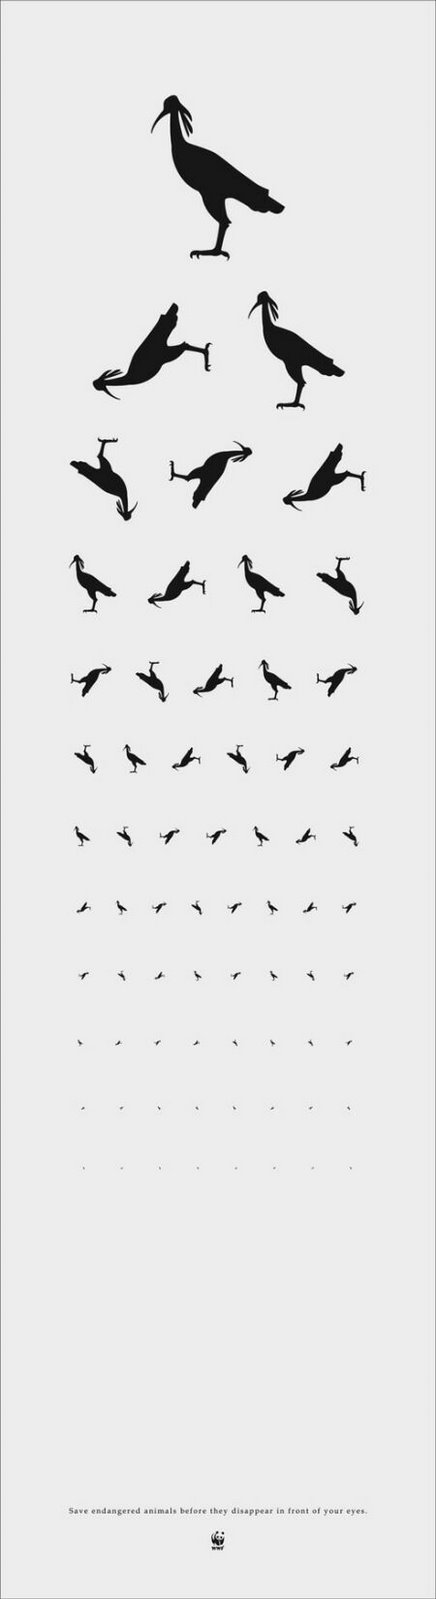 design context april 2011 DMV Vision Exam the zoo eye chart really works well for me i have noticed that they are all black silhouettes which stand out easy to municate the different animals